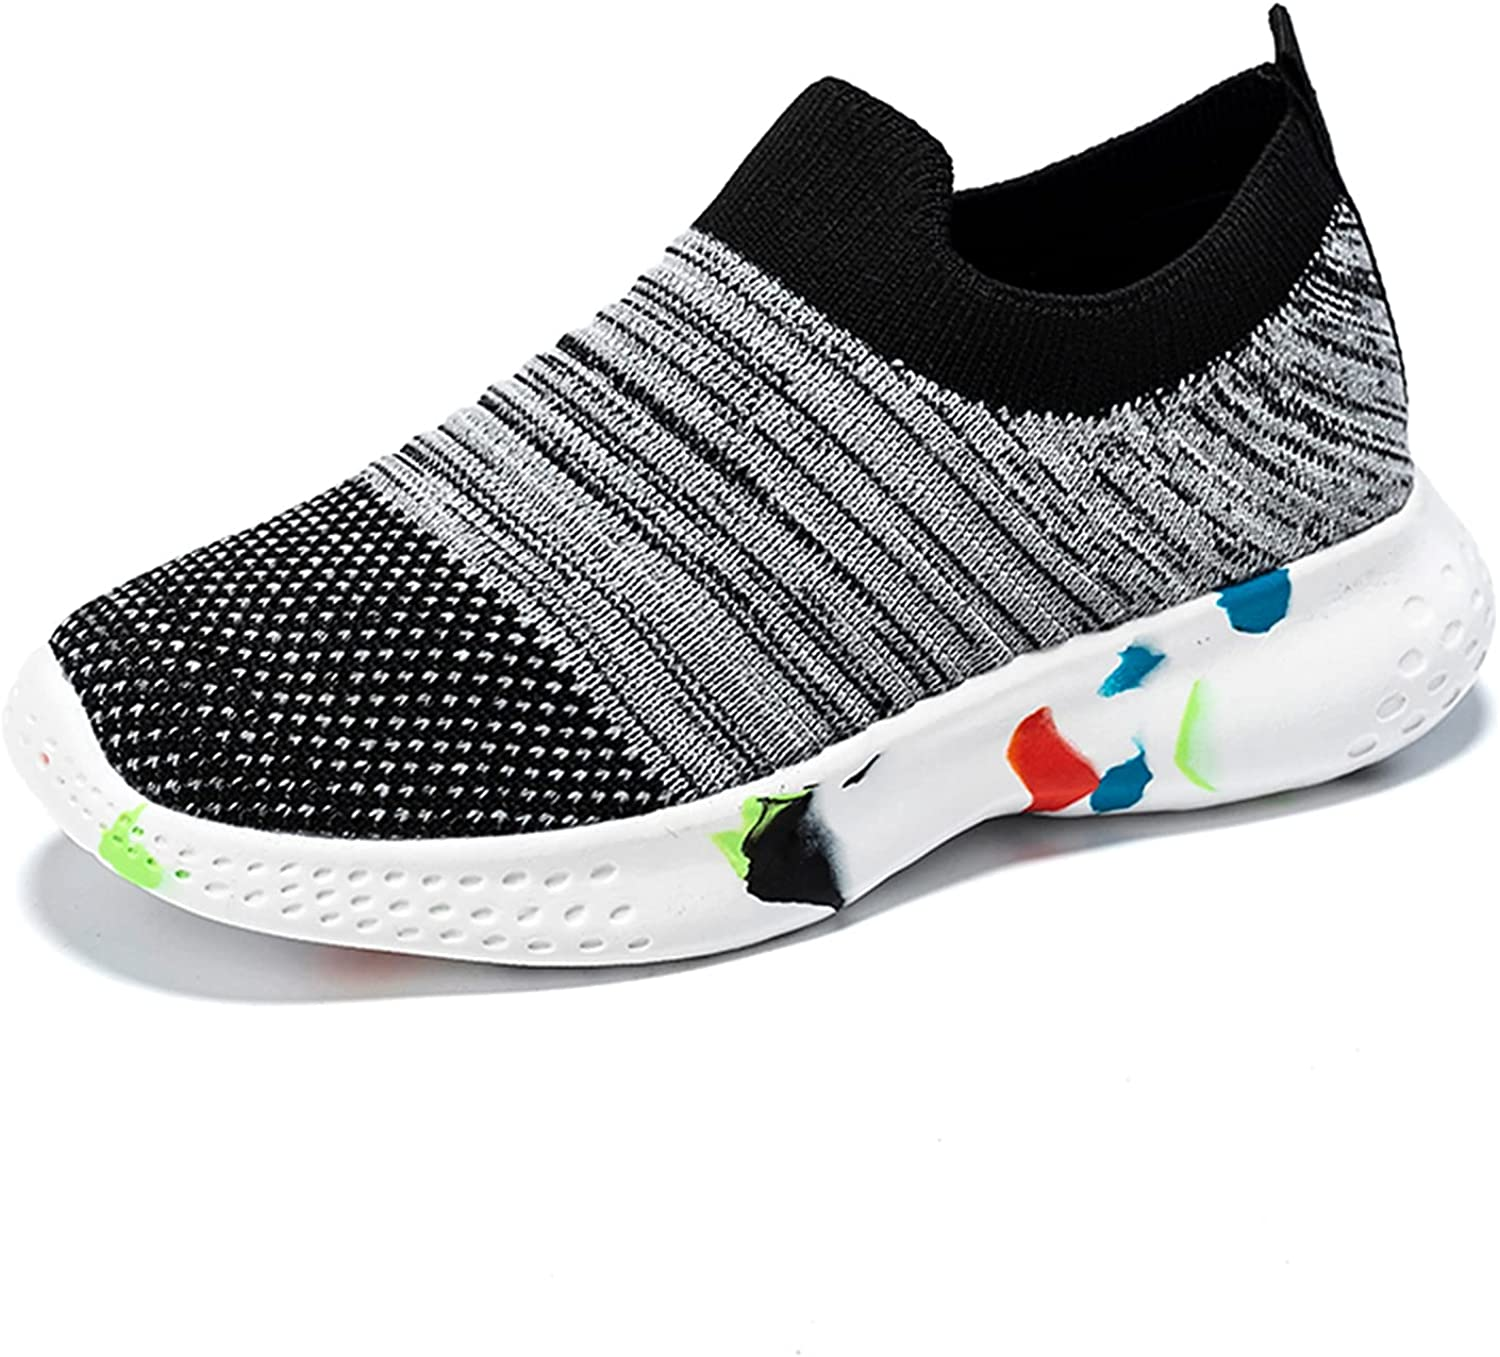 JUBAIYUAN Boys and Girls' Sports Shoes Children's Lightweight Slip-on Running Shoes Walking Tennis Shoes Suitable for Young Children/Older Kids